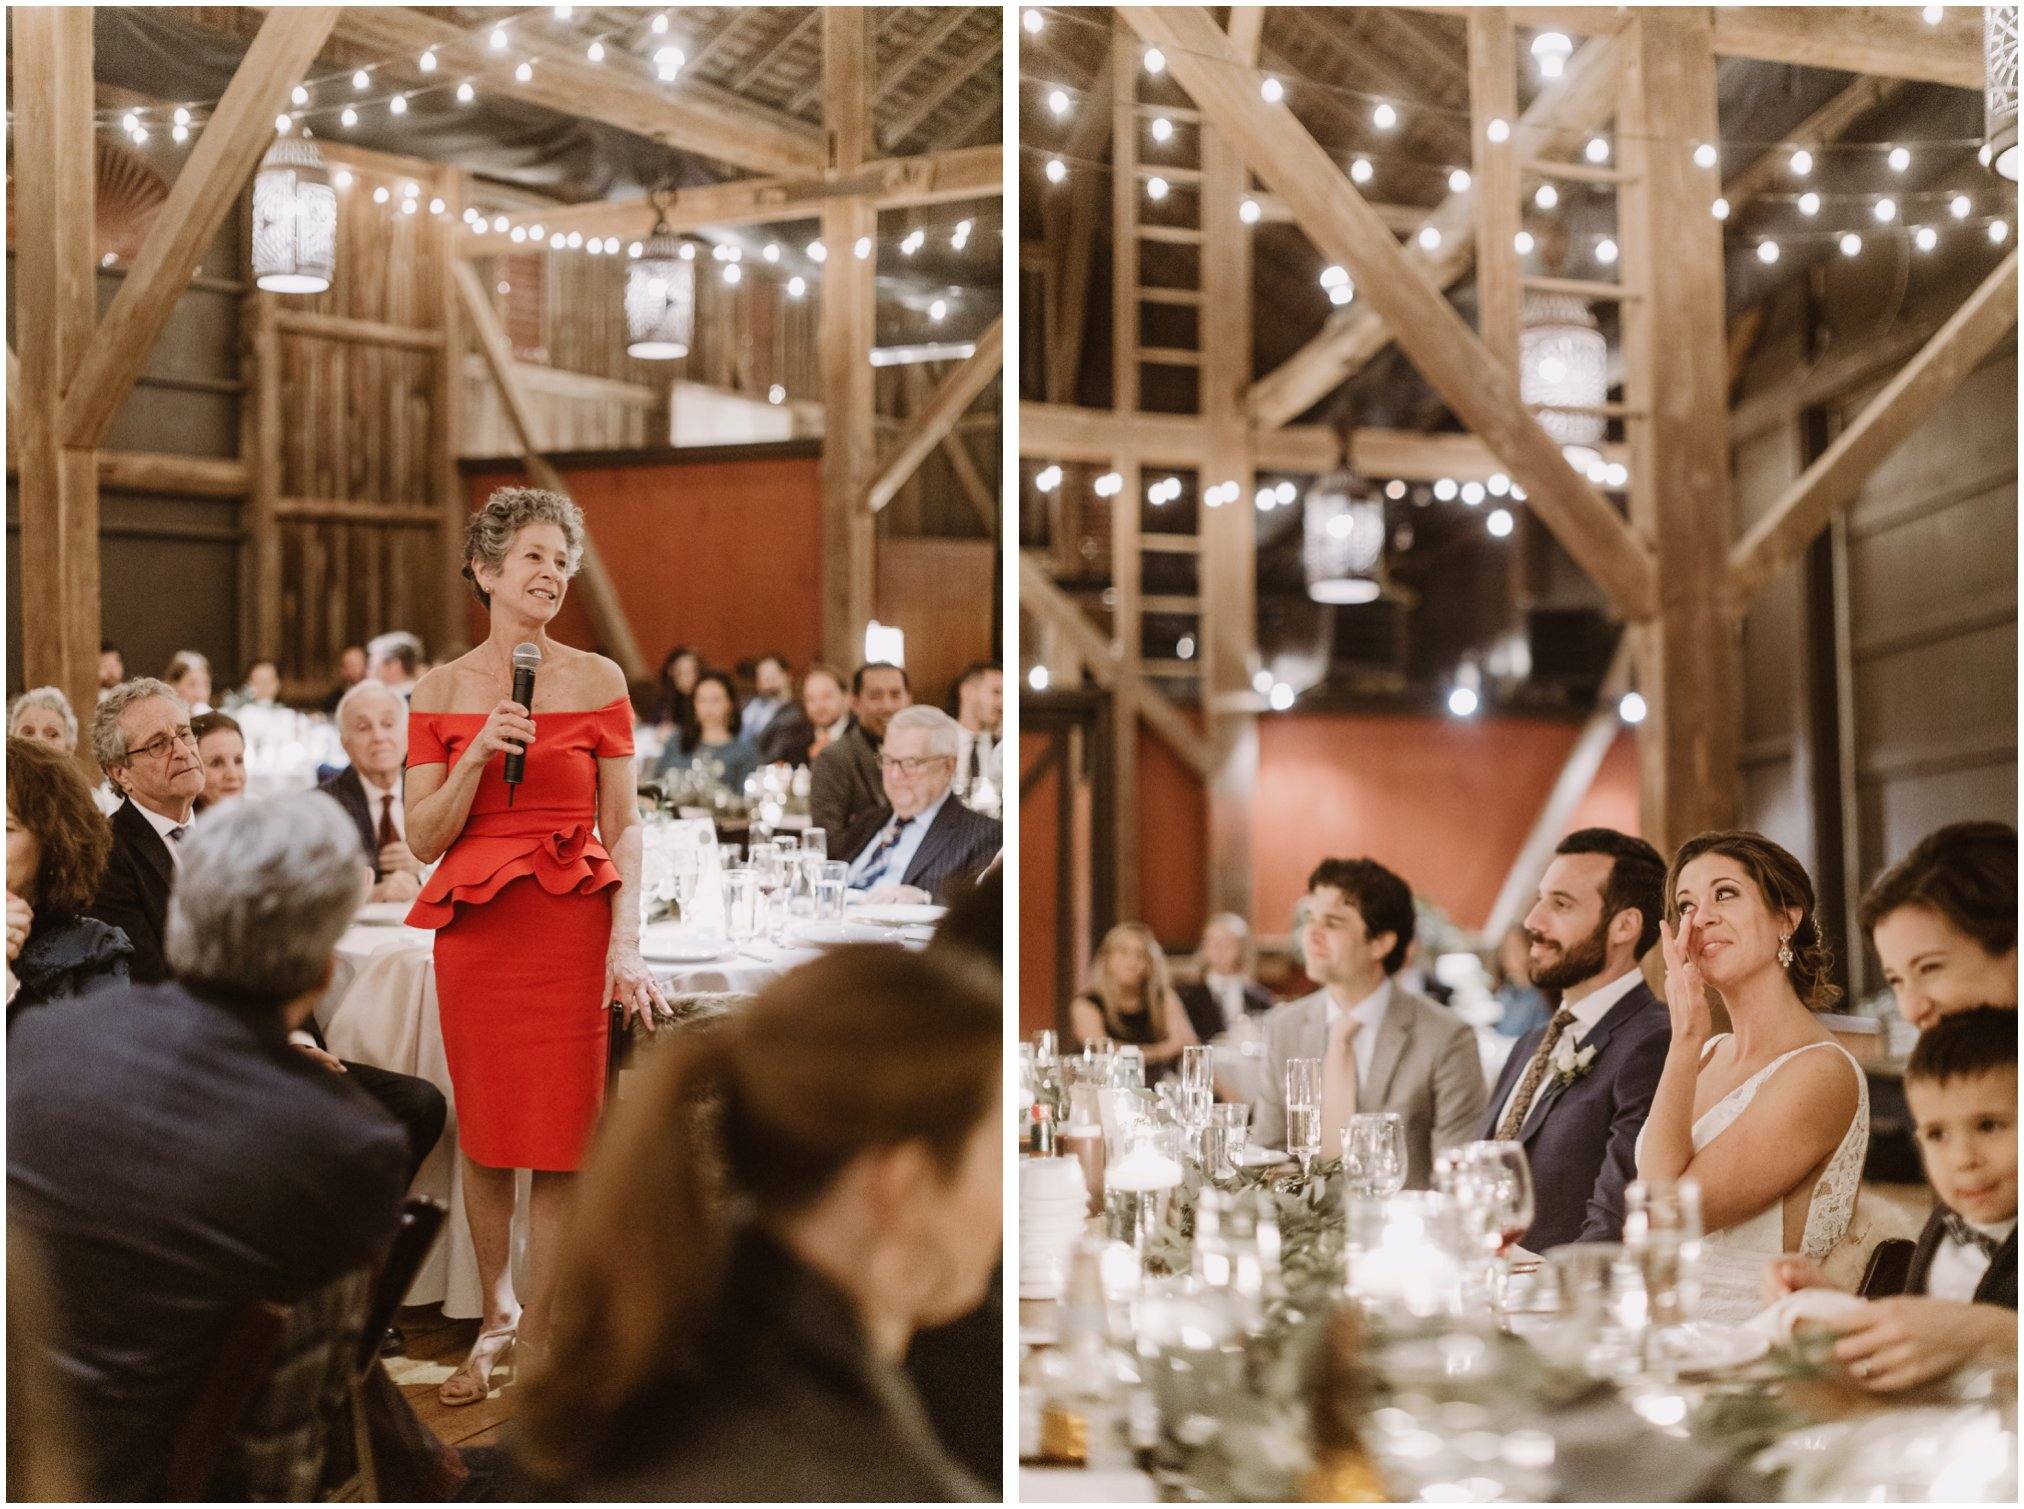 Fall wedding reception in barn with string lights